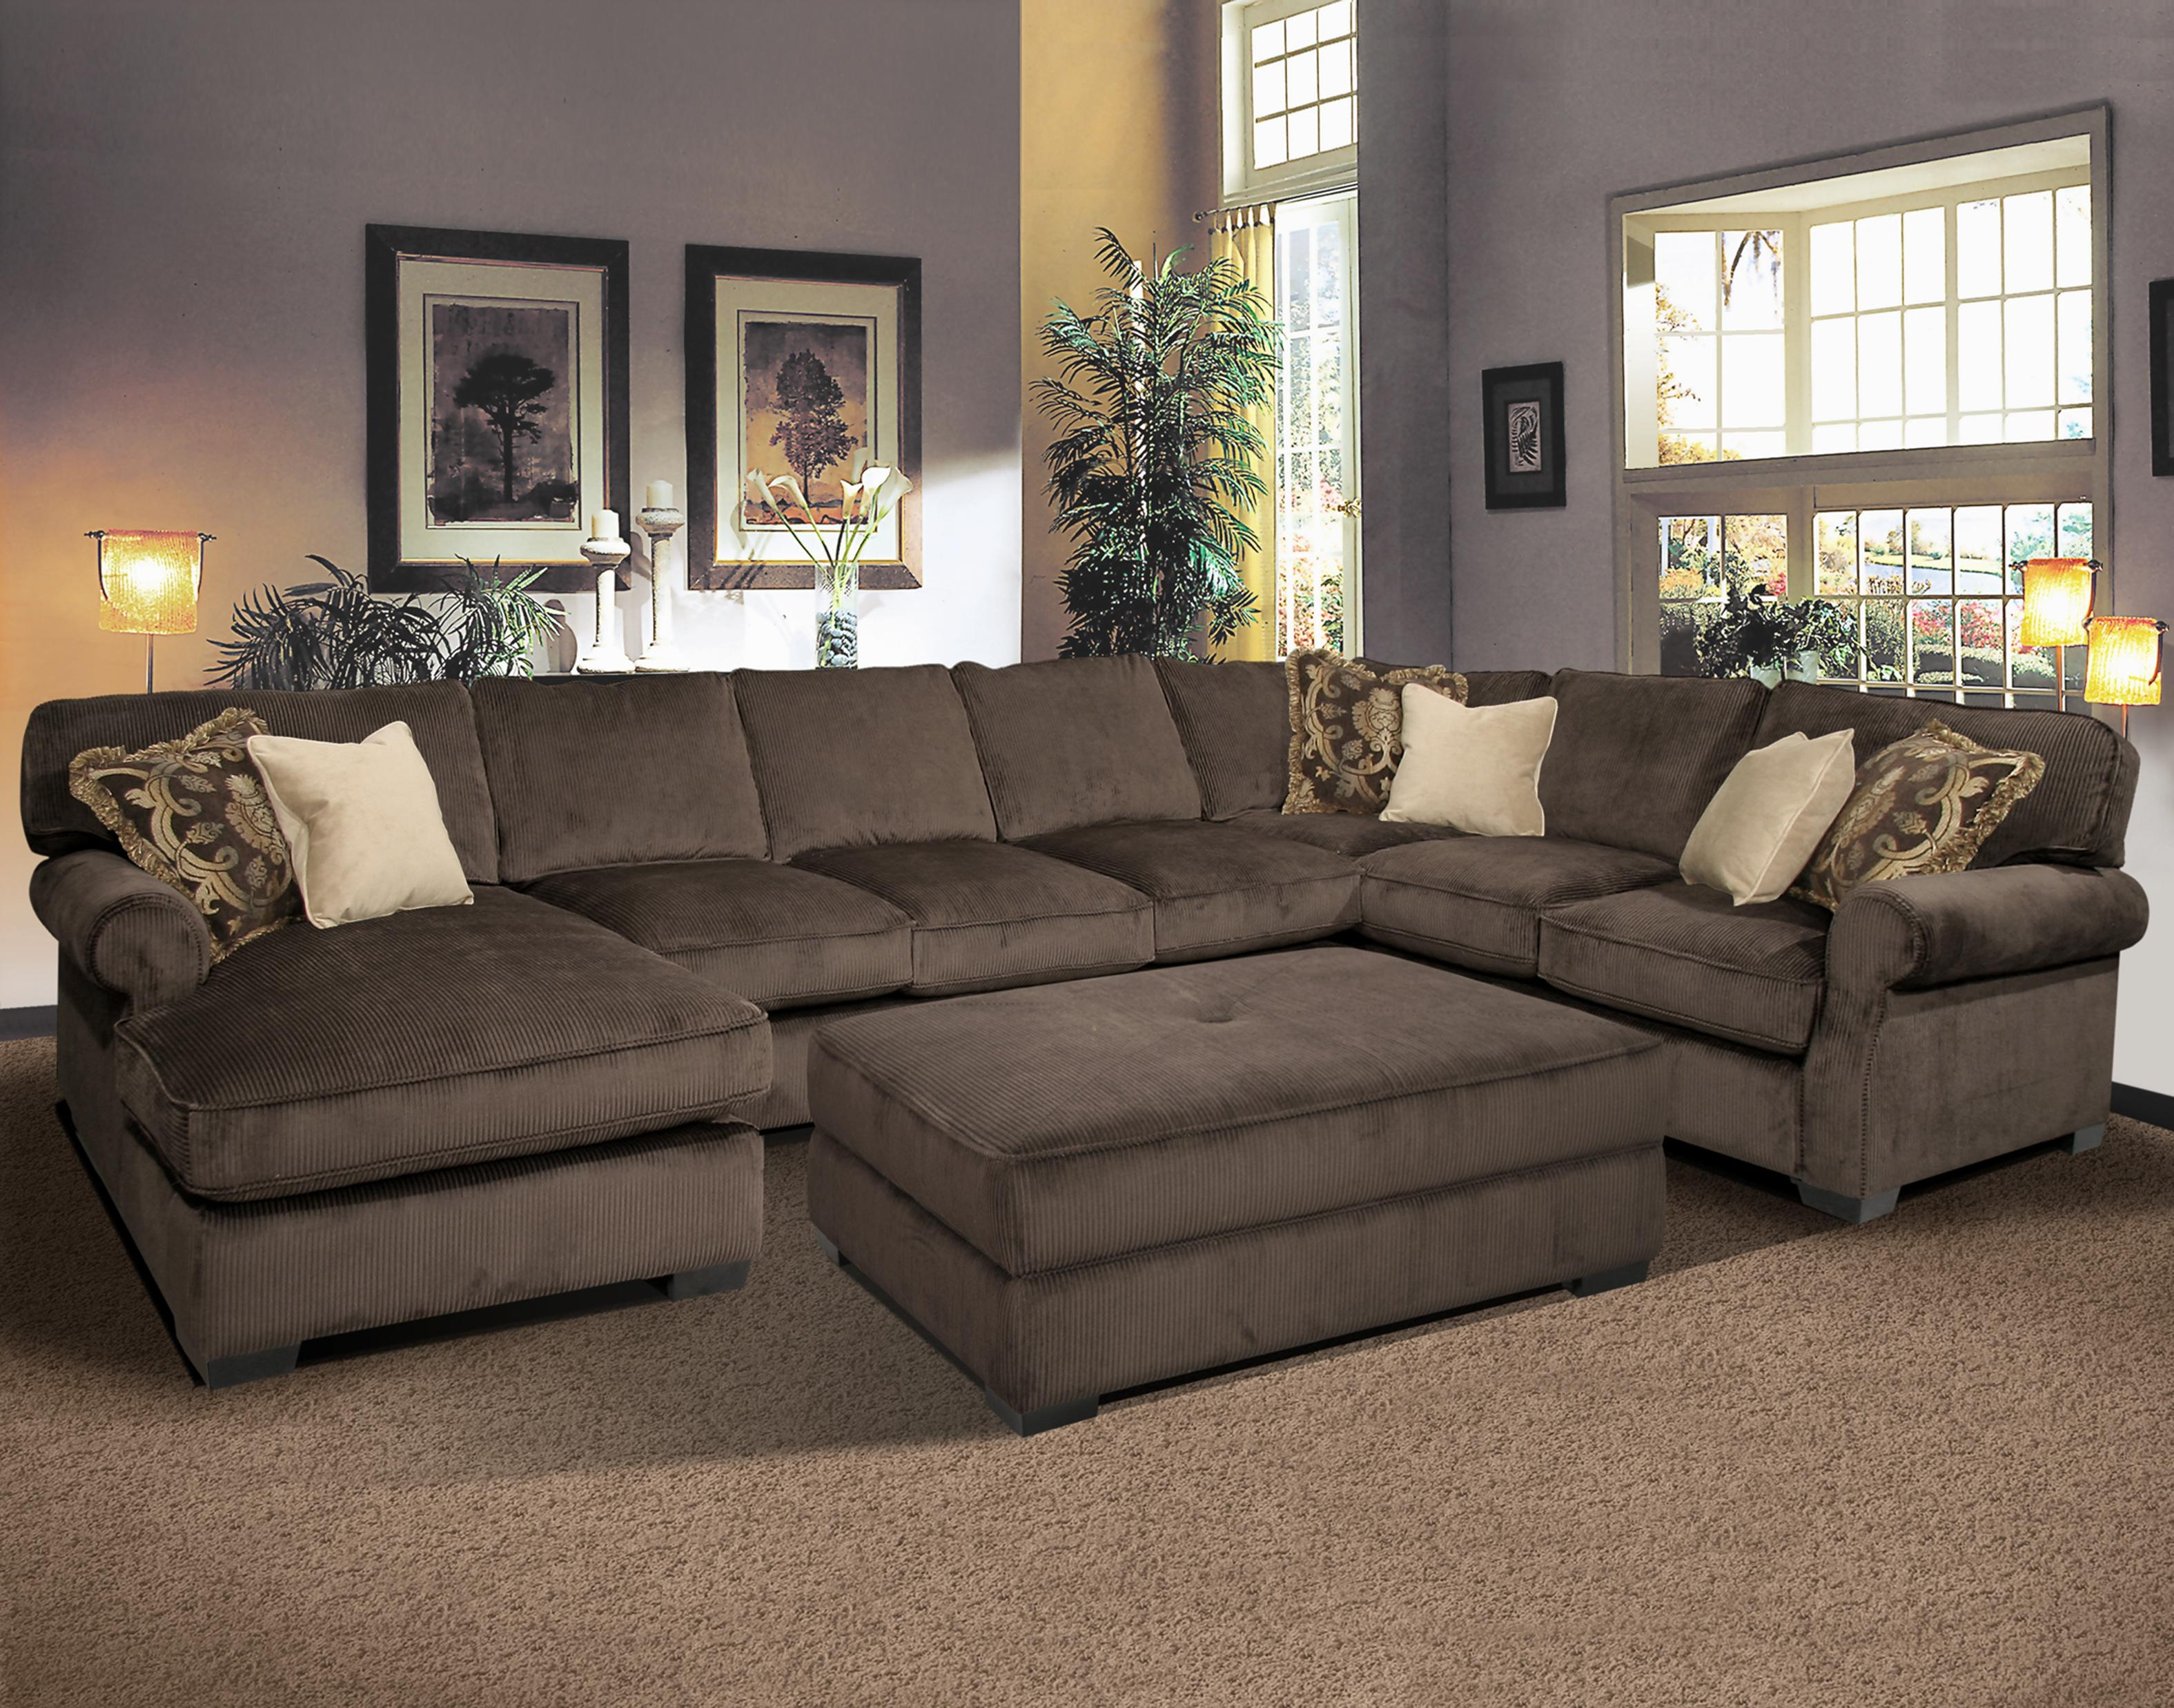 Huge Sectional Sofas Best Home Furniture Ideas Throughout Extra Large Sectional Sofas (View 6 of 15)